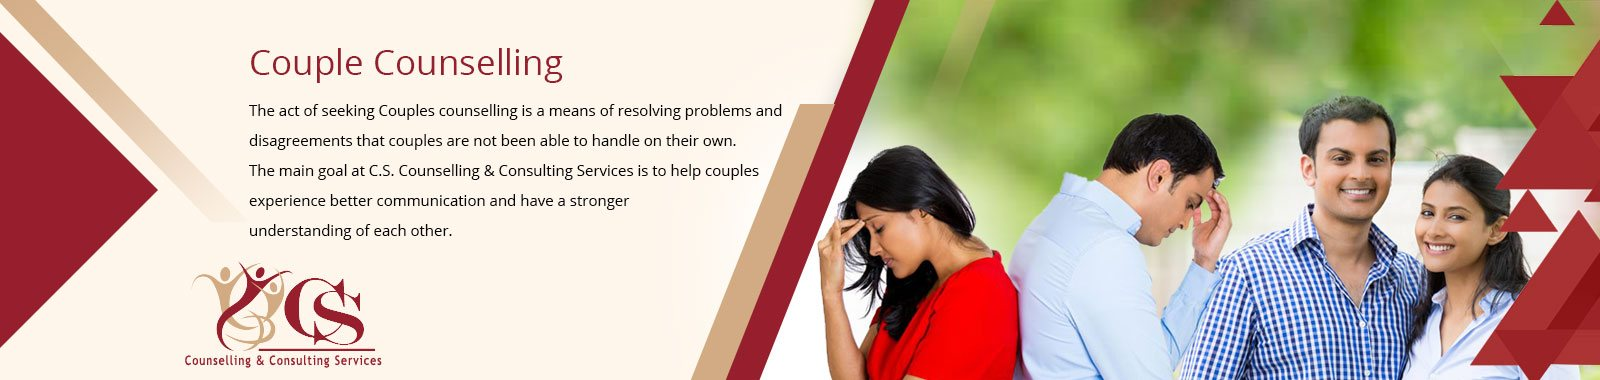 Couples Counselling Services - CS Counselling